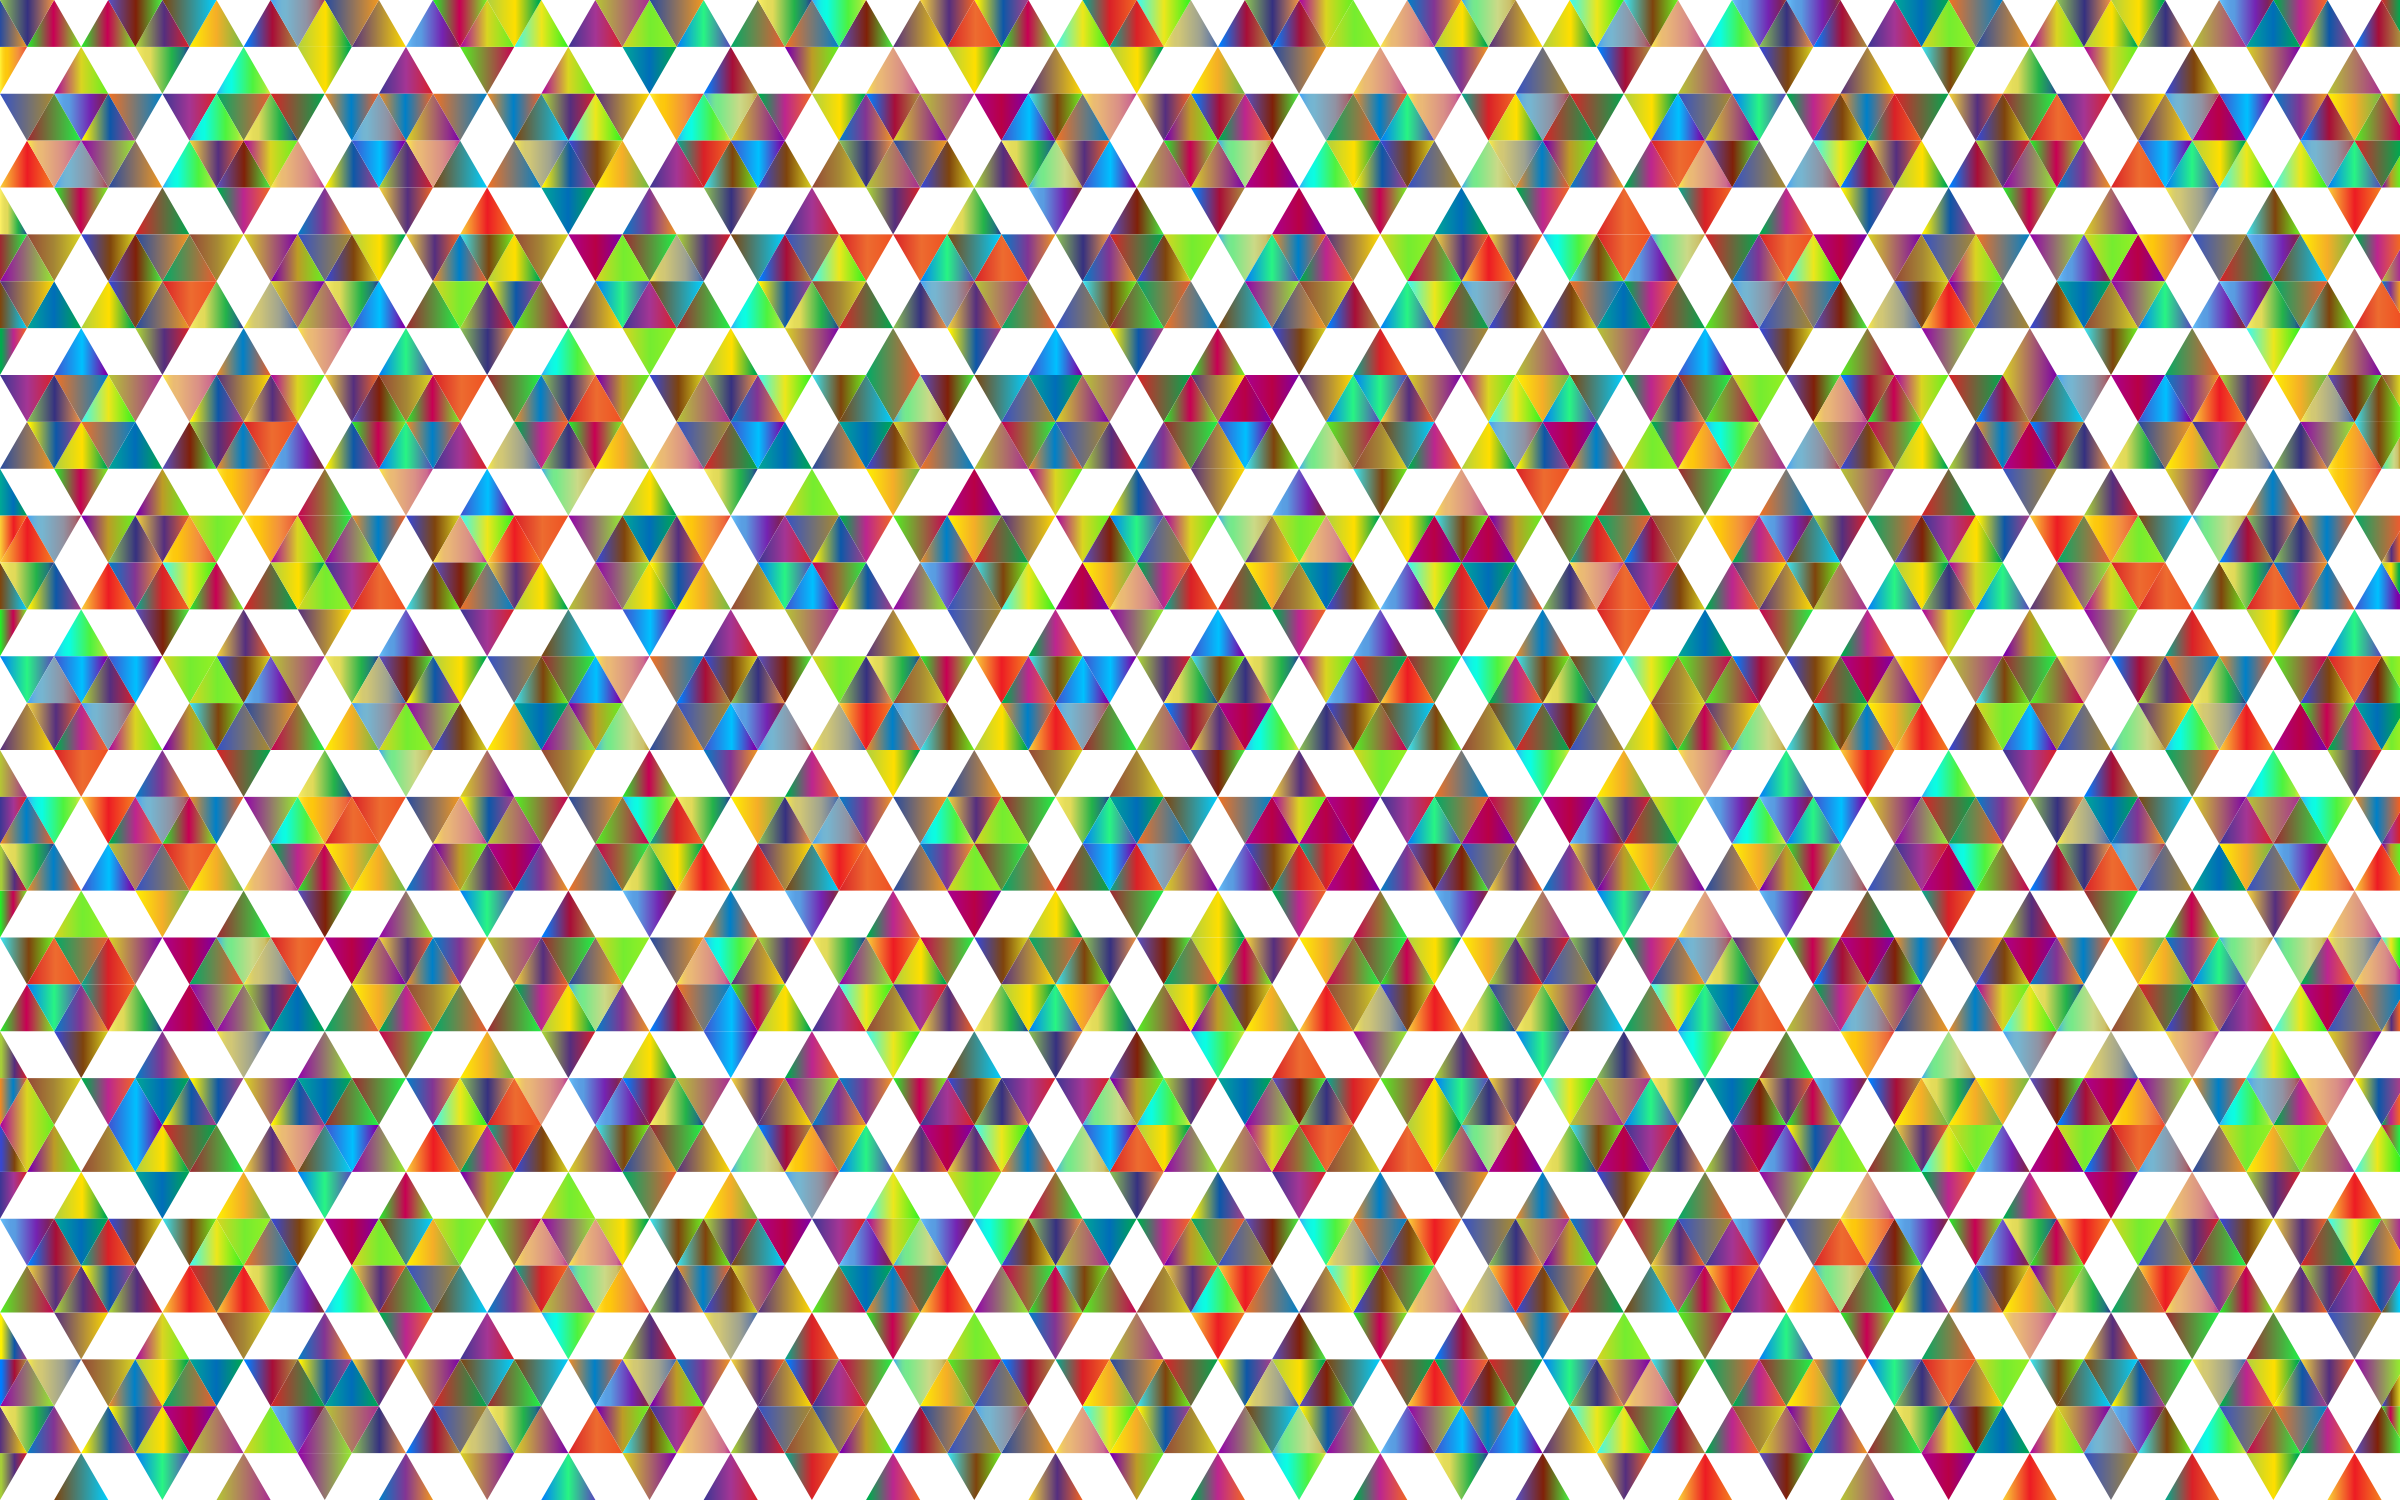 Prismatic Geometric Pattern Variation 2 by GDJ